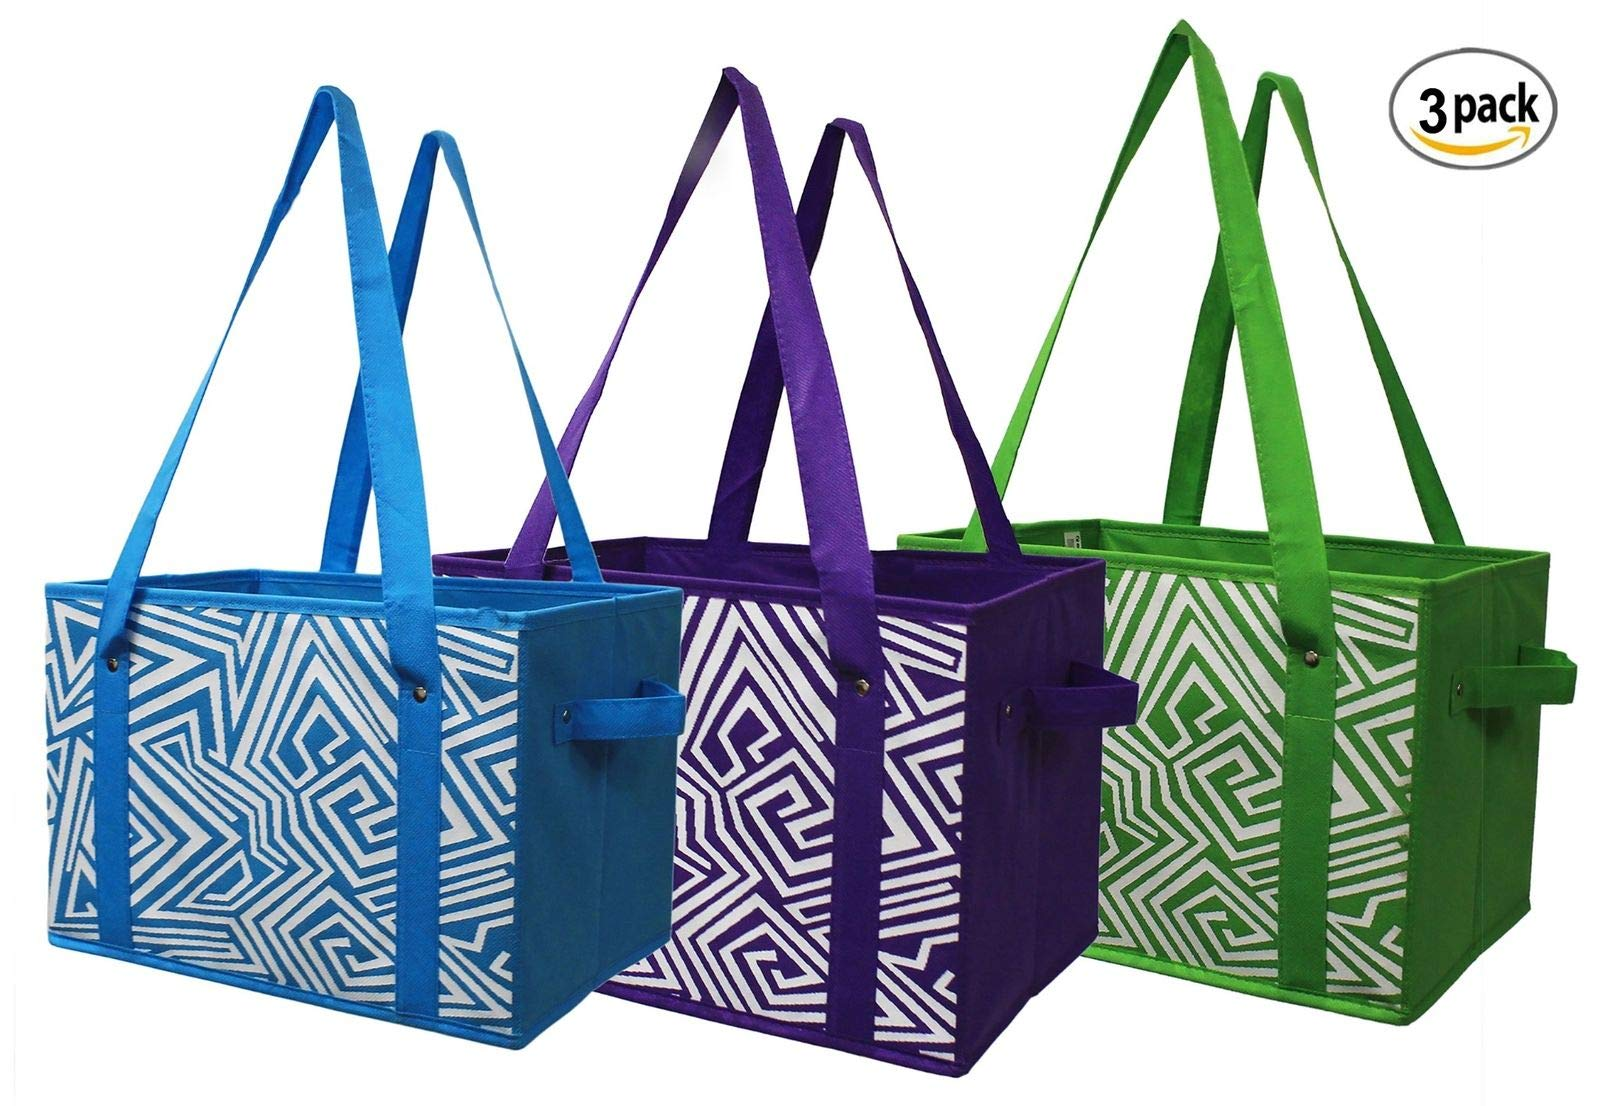 Earthwise Reusable Grocery Bag Shopping Box Tote COLLAPSIBLE BAG with Reinforced Bottom - 3 Bright Colors (Set of 3)